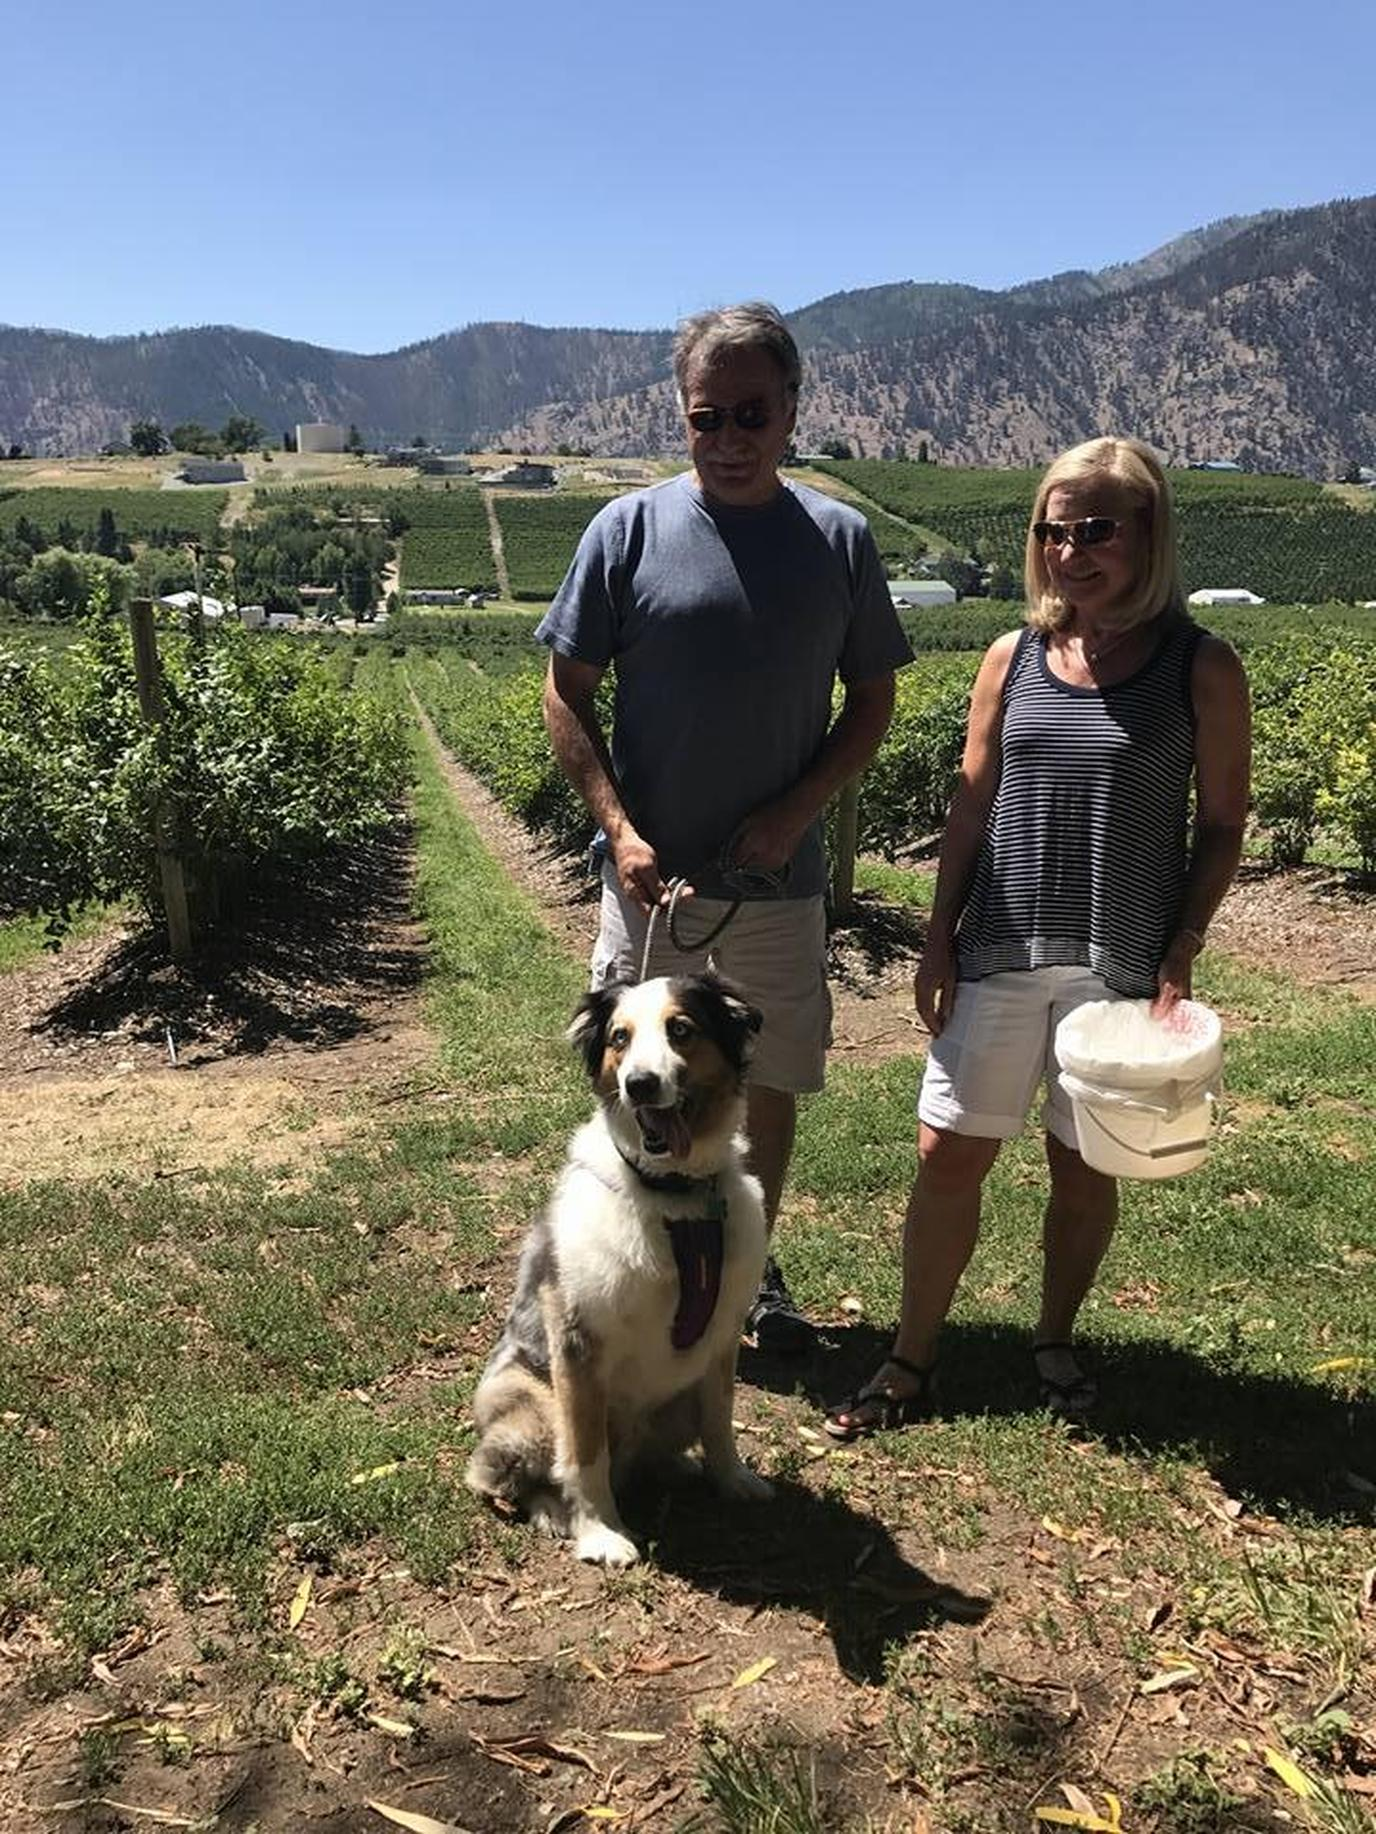 A couple and their dog picking blueberries.